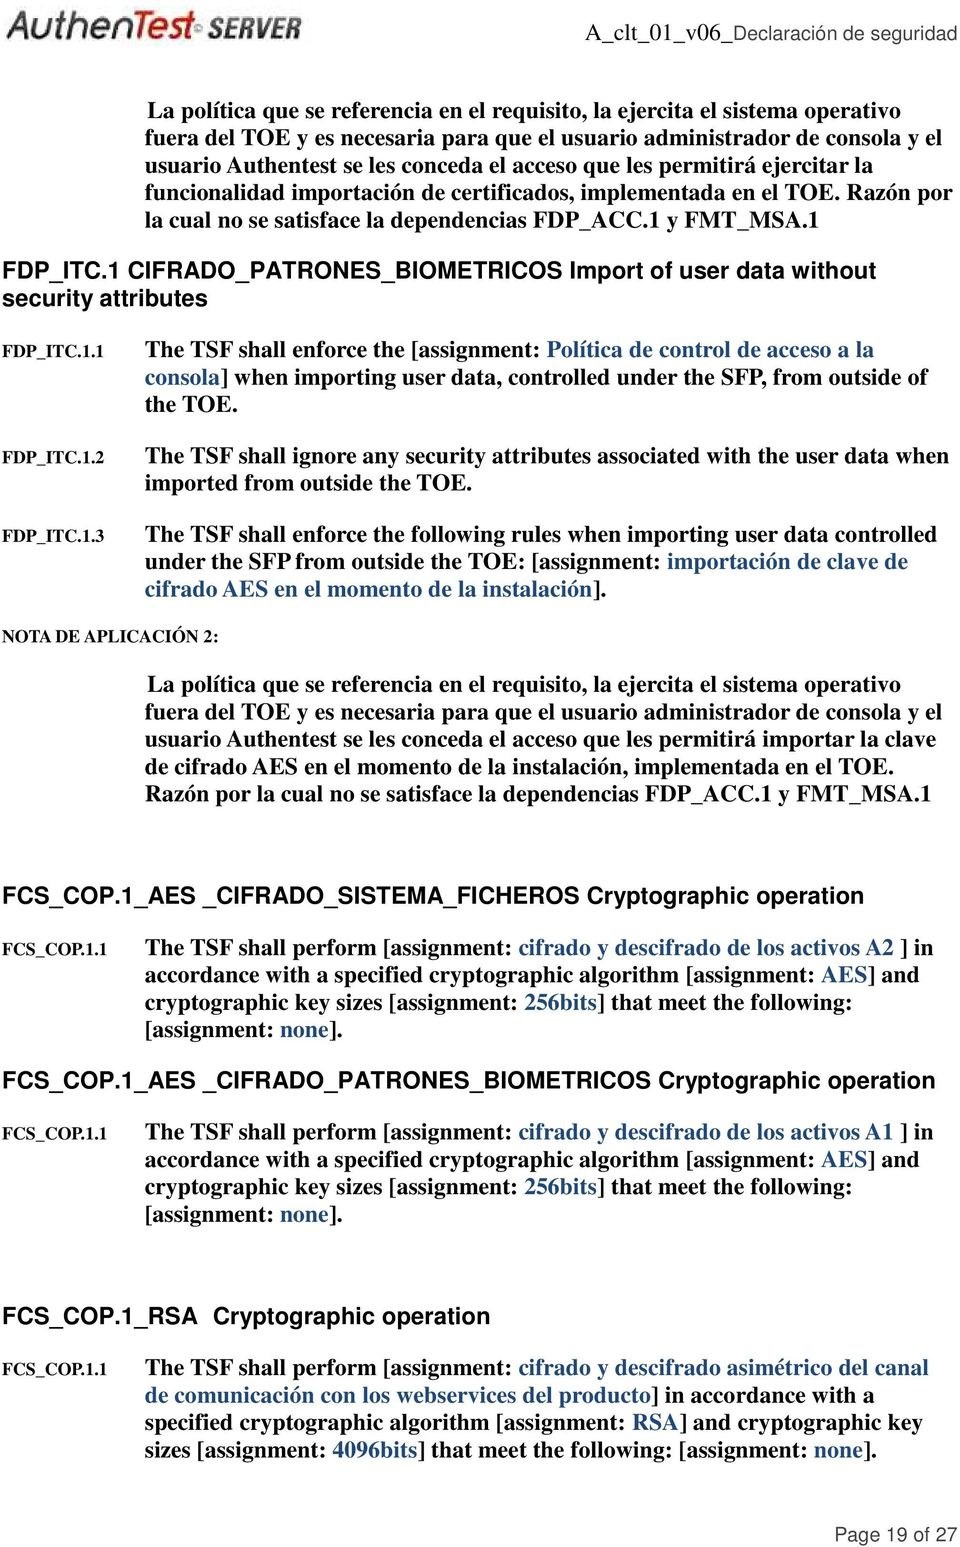 1 CIFRADO_PATRONES_BIOMETRICOS Import of user data without security attributes FDP_ITC.1.1 FDP_ITC.1.2 FDP_ITC.1.3 The TSF shall enforce the [assignment: Política de control de acceso a la consola] when importing user data, controlled under the SFP, from outside of the TOE.